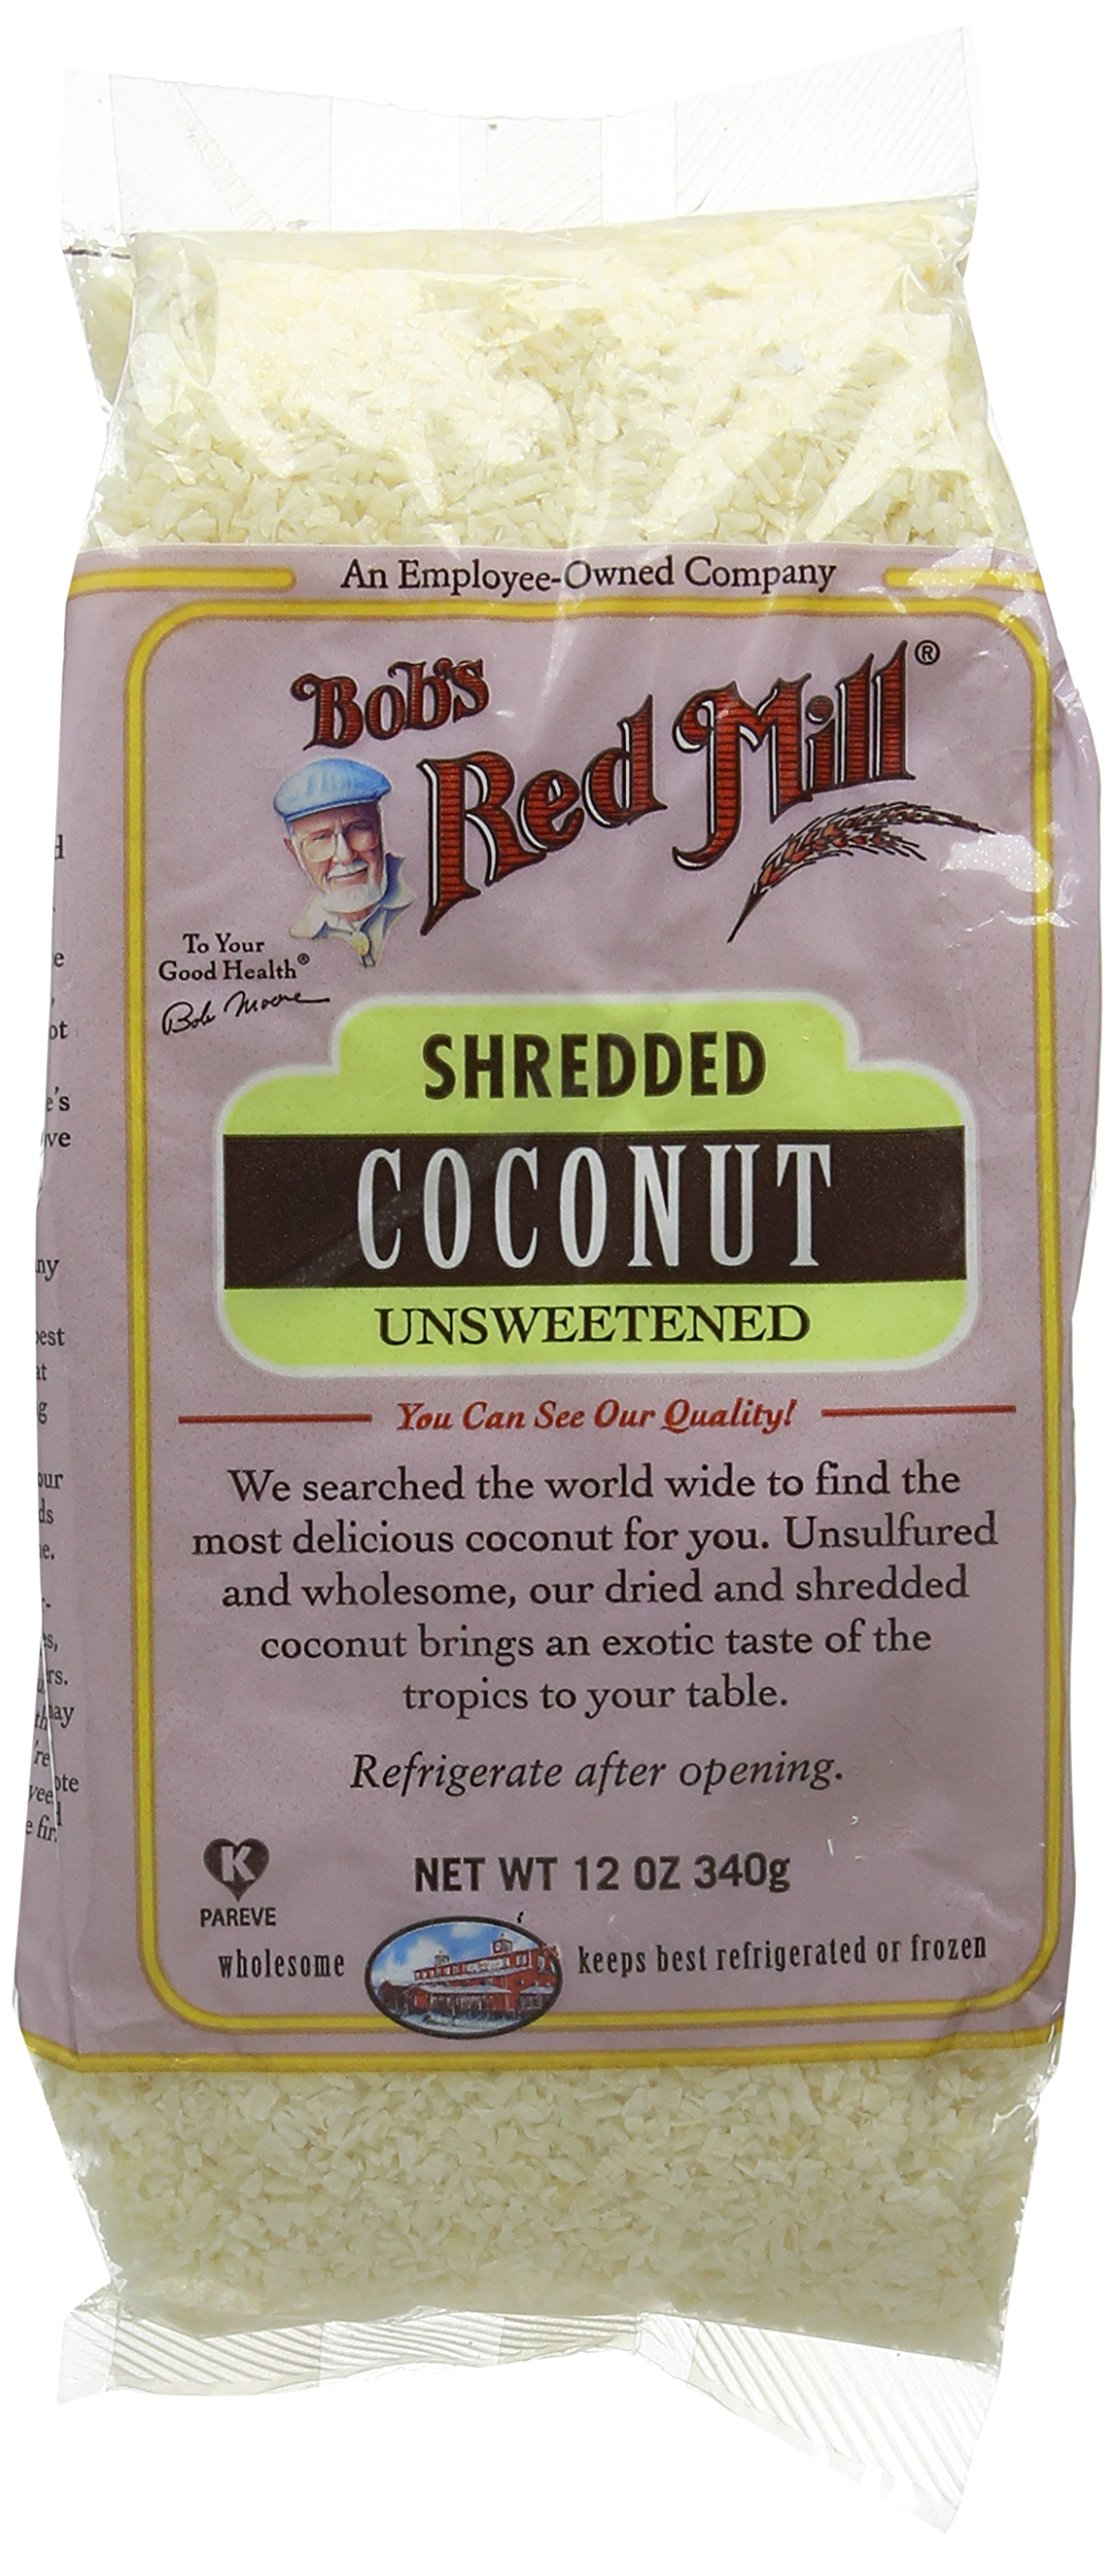 Bob's Red Mill Unsweetened Shredded Coconut, 12-Ounce (Pack of 4)